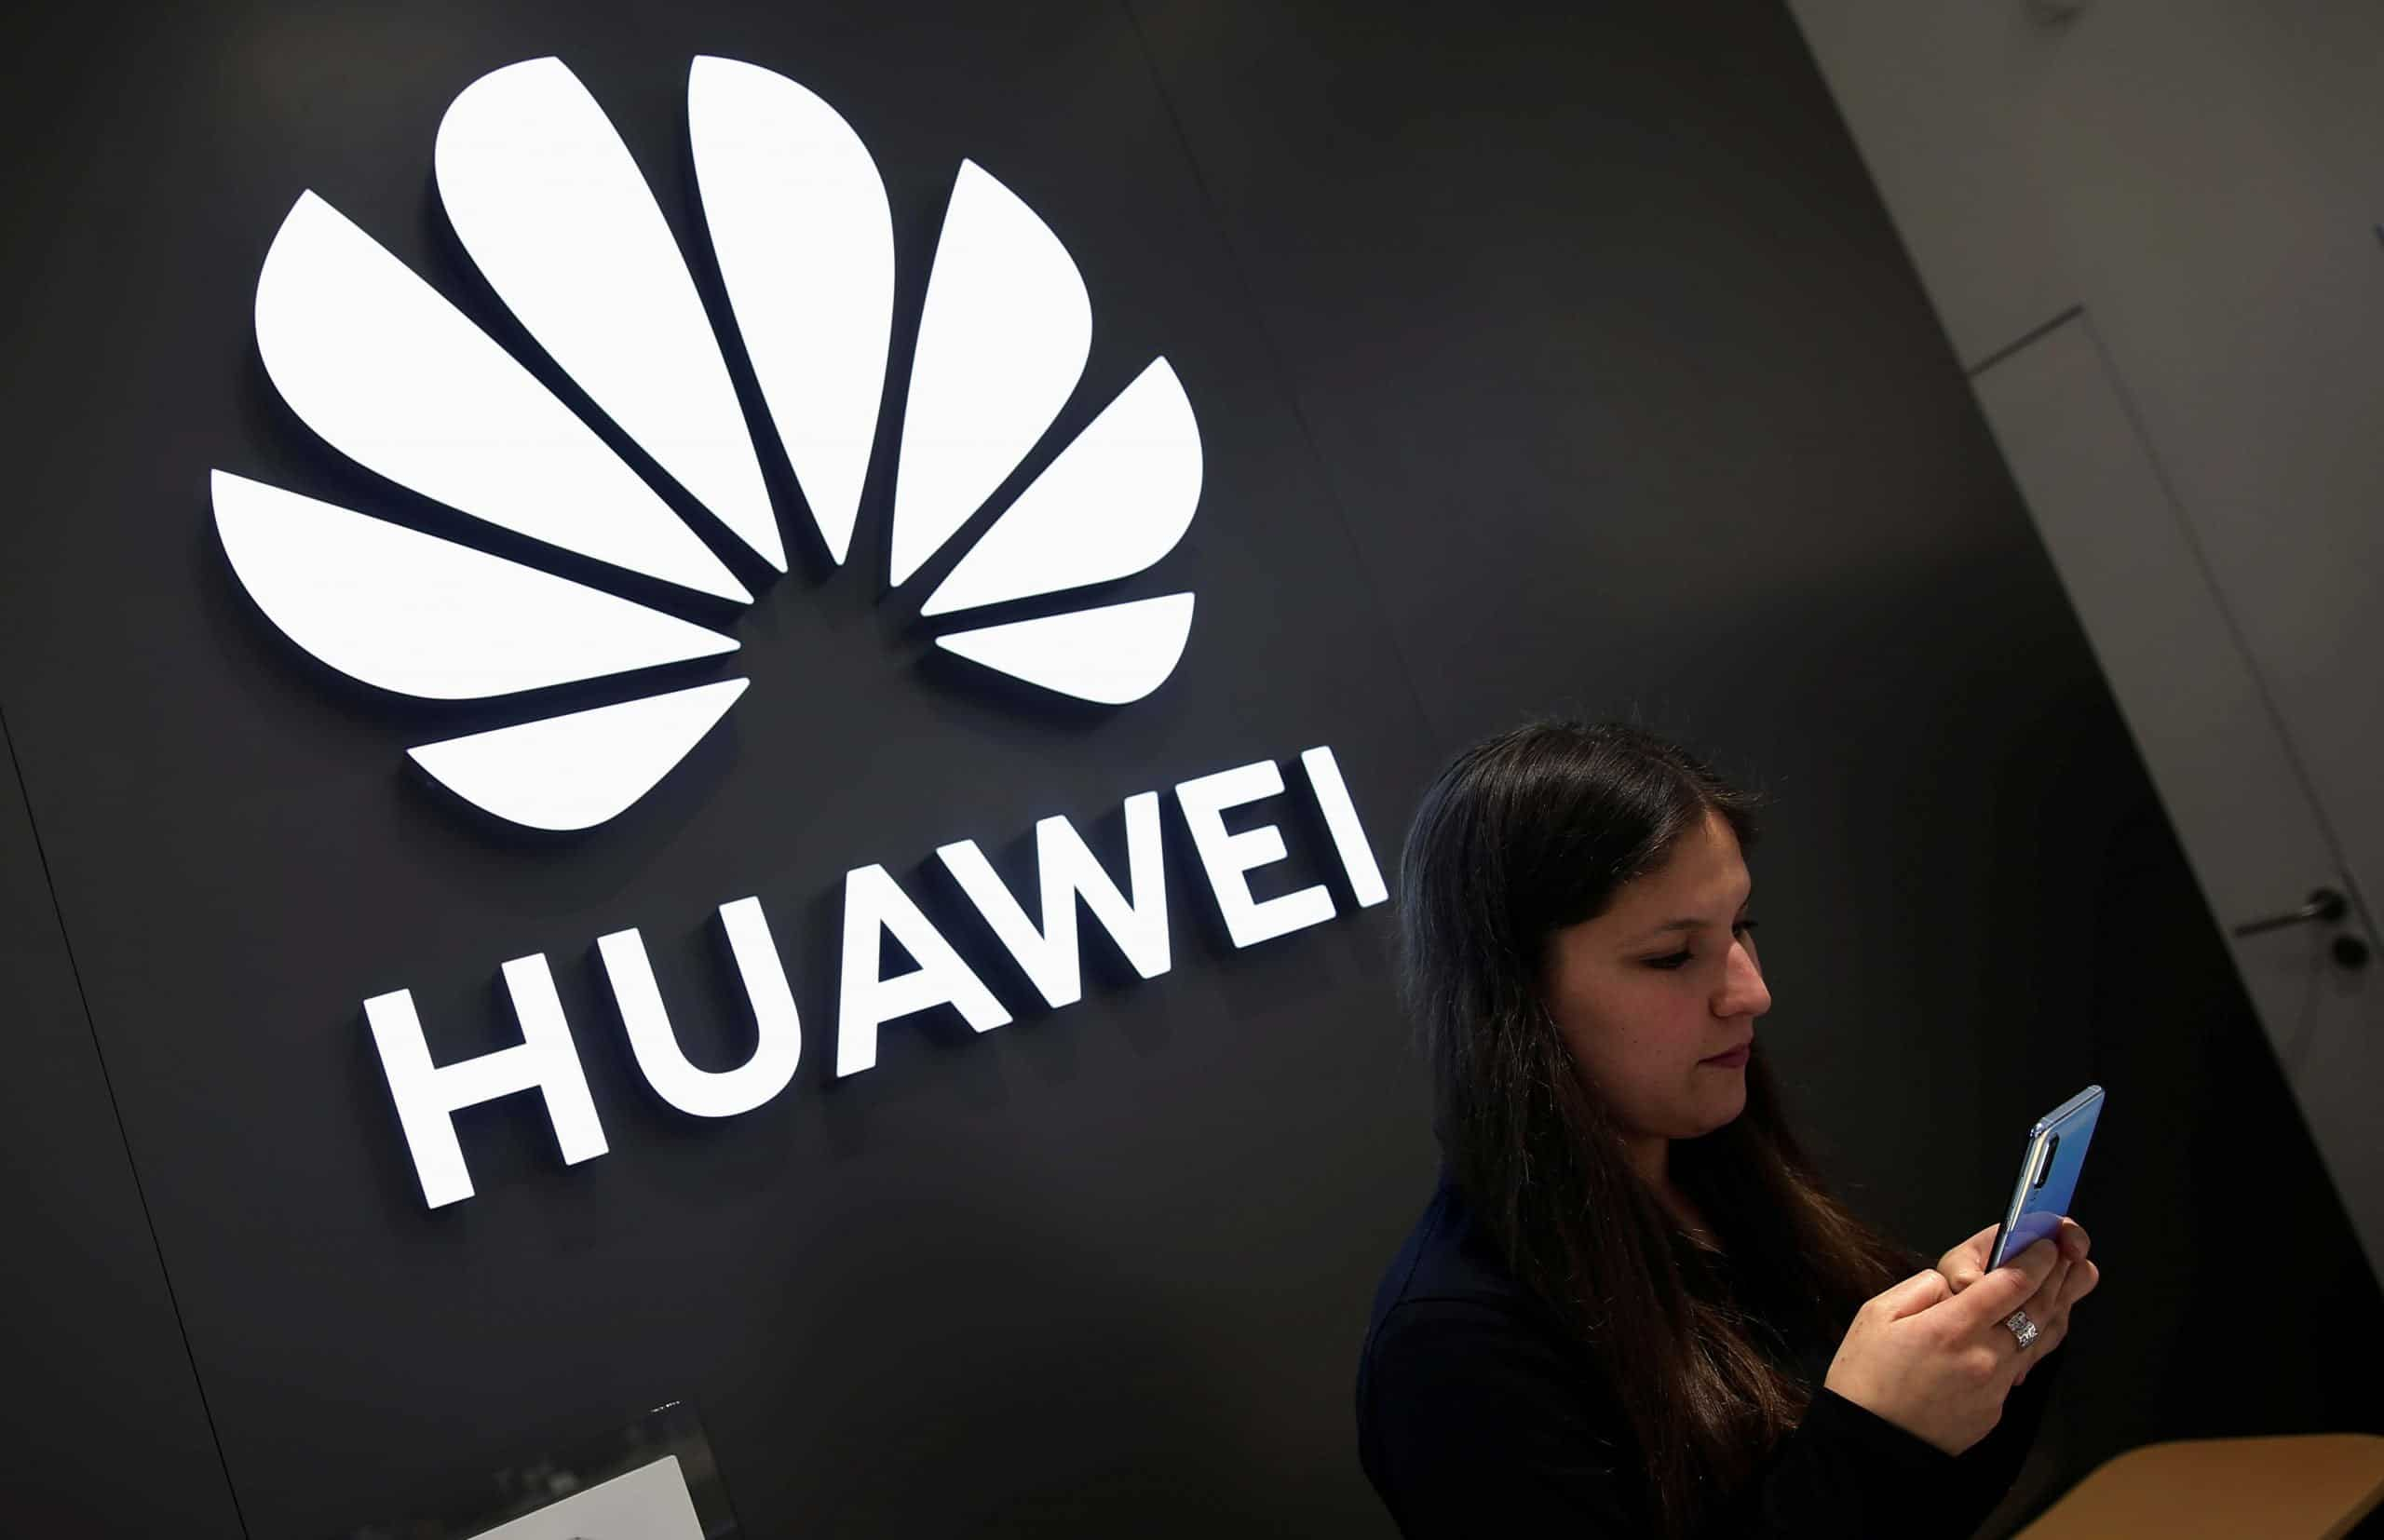 Huawei's sales revenue